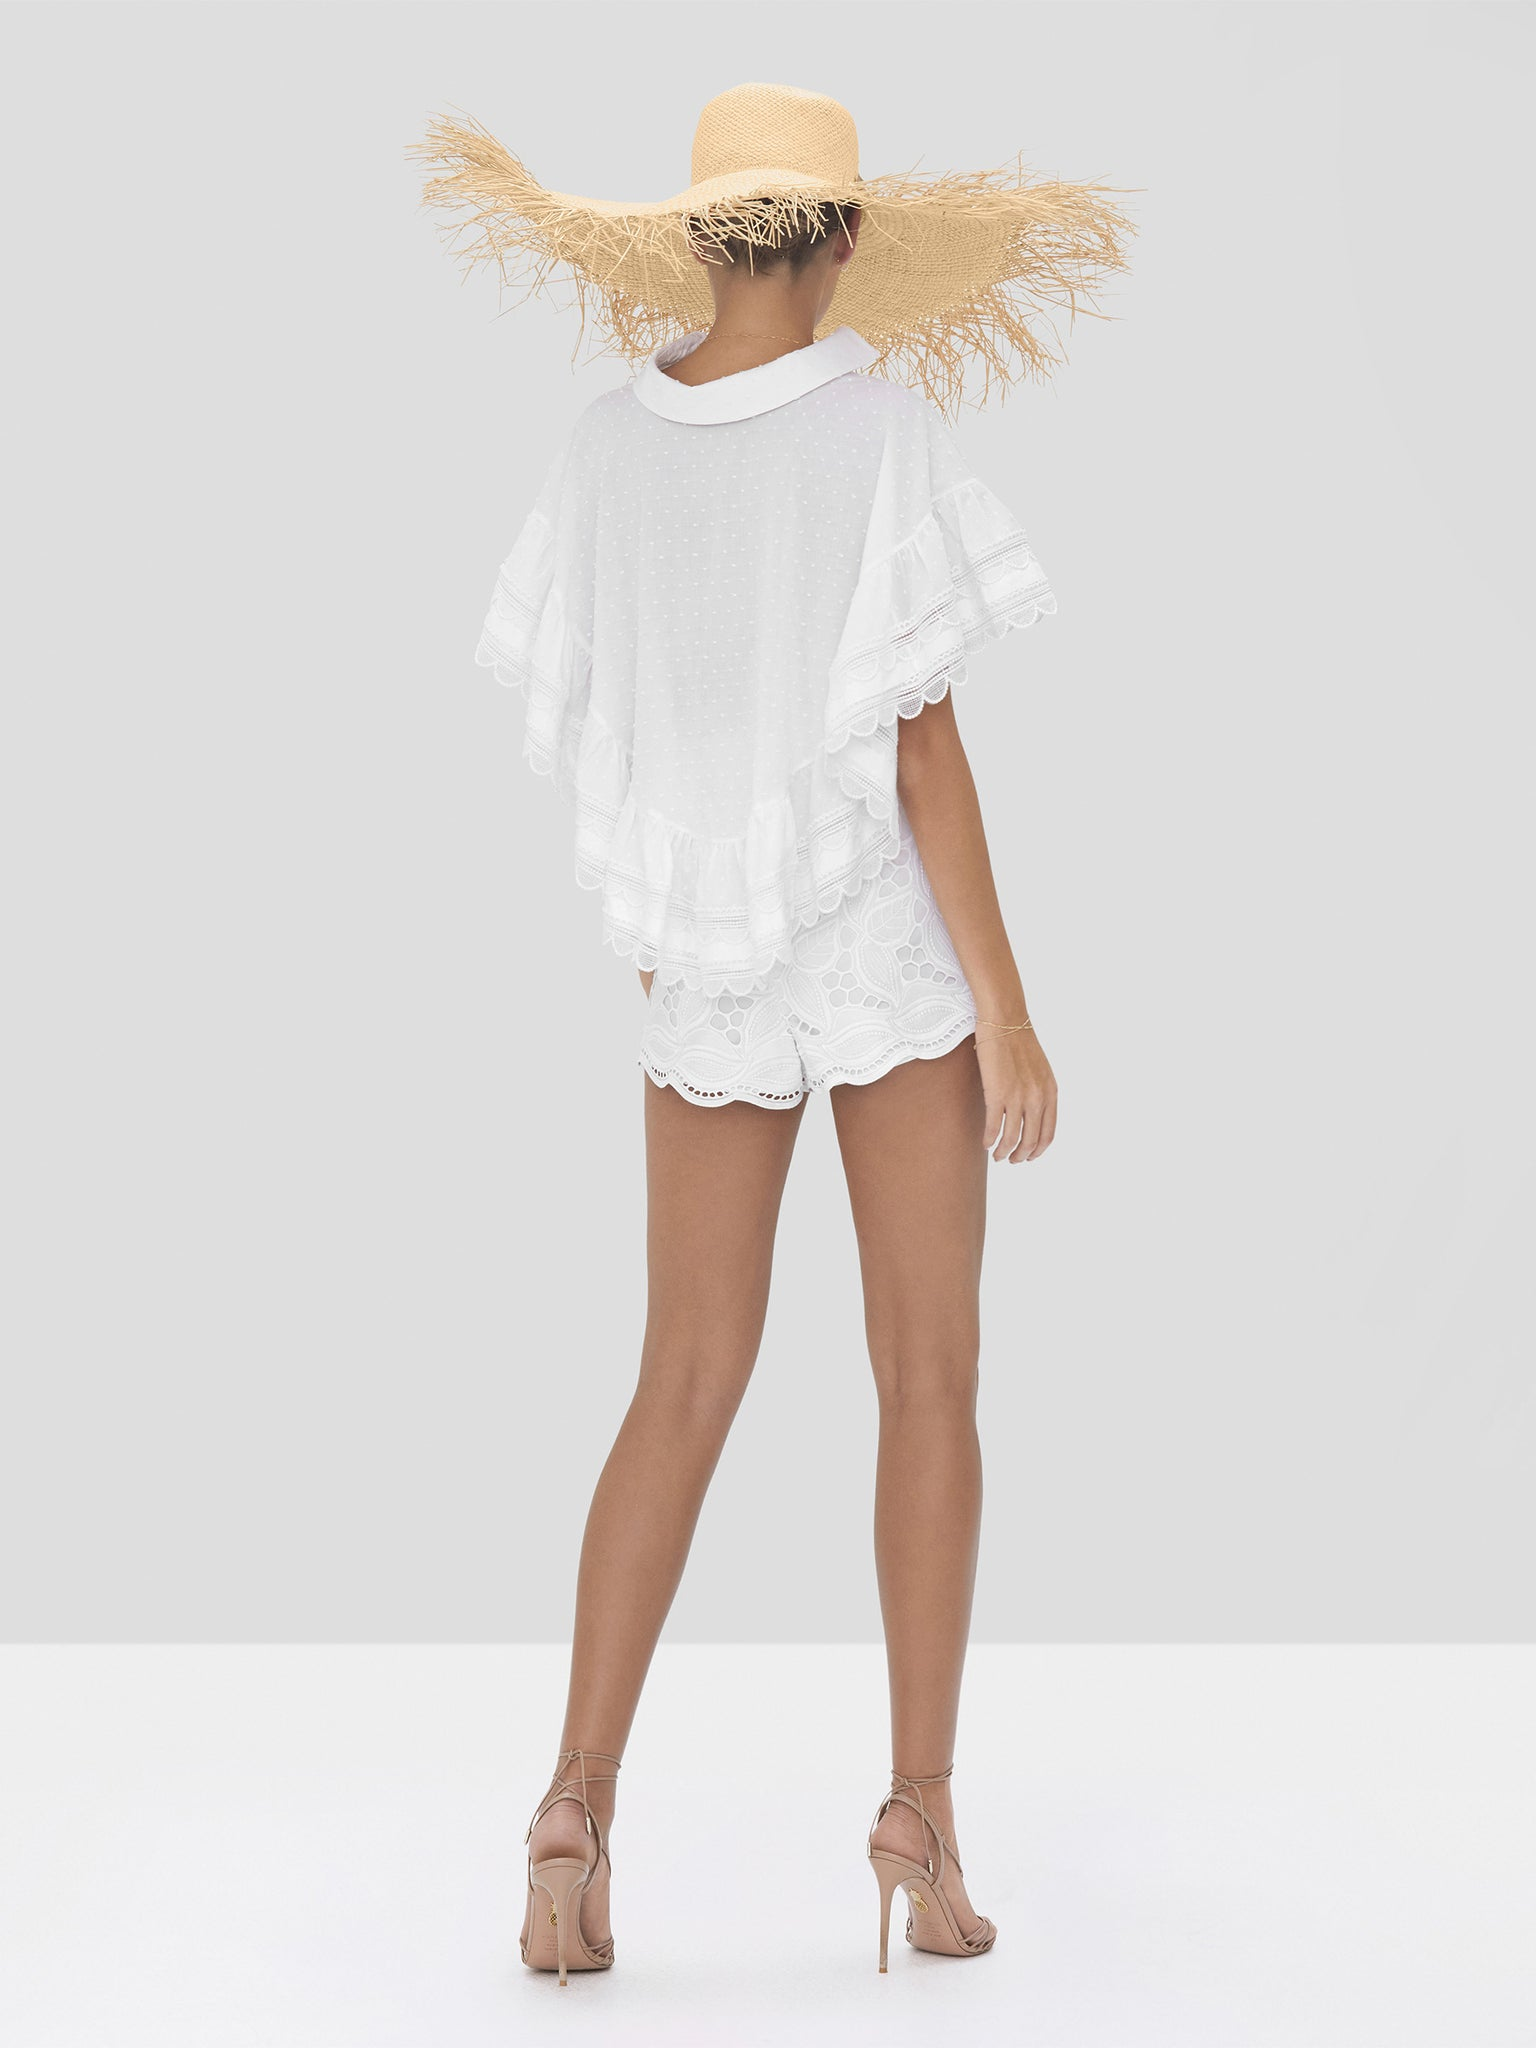 Alexis Casimir Top and Bowes Short in White from Spring Summer 2020 - Rear View